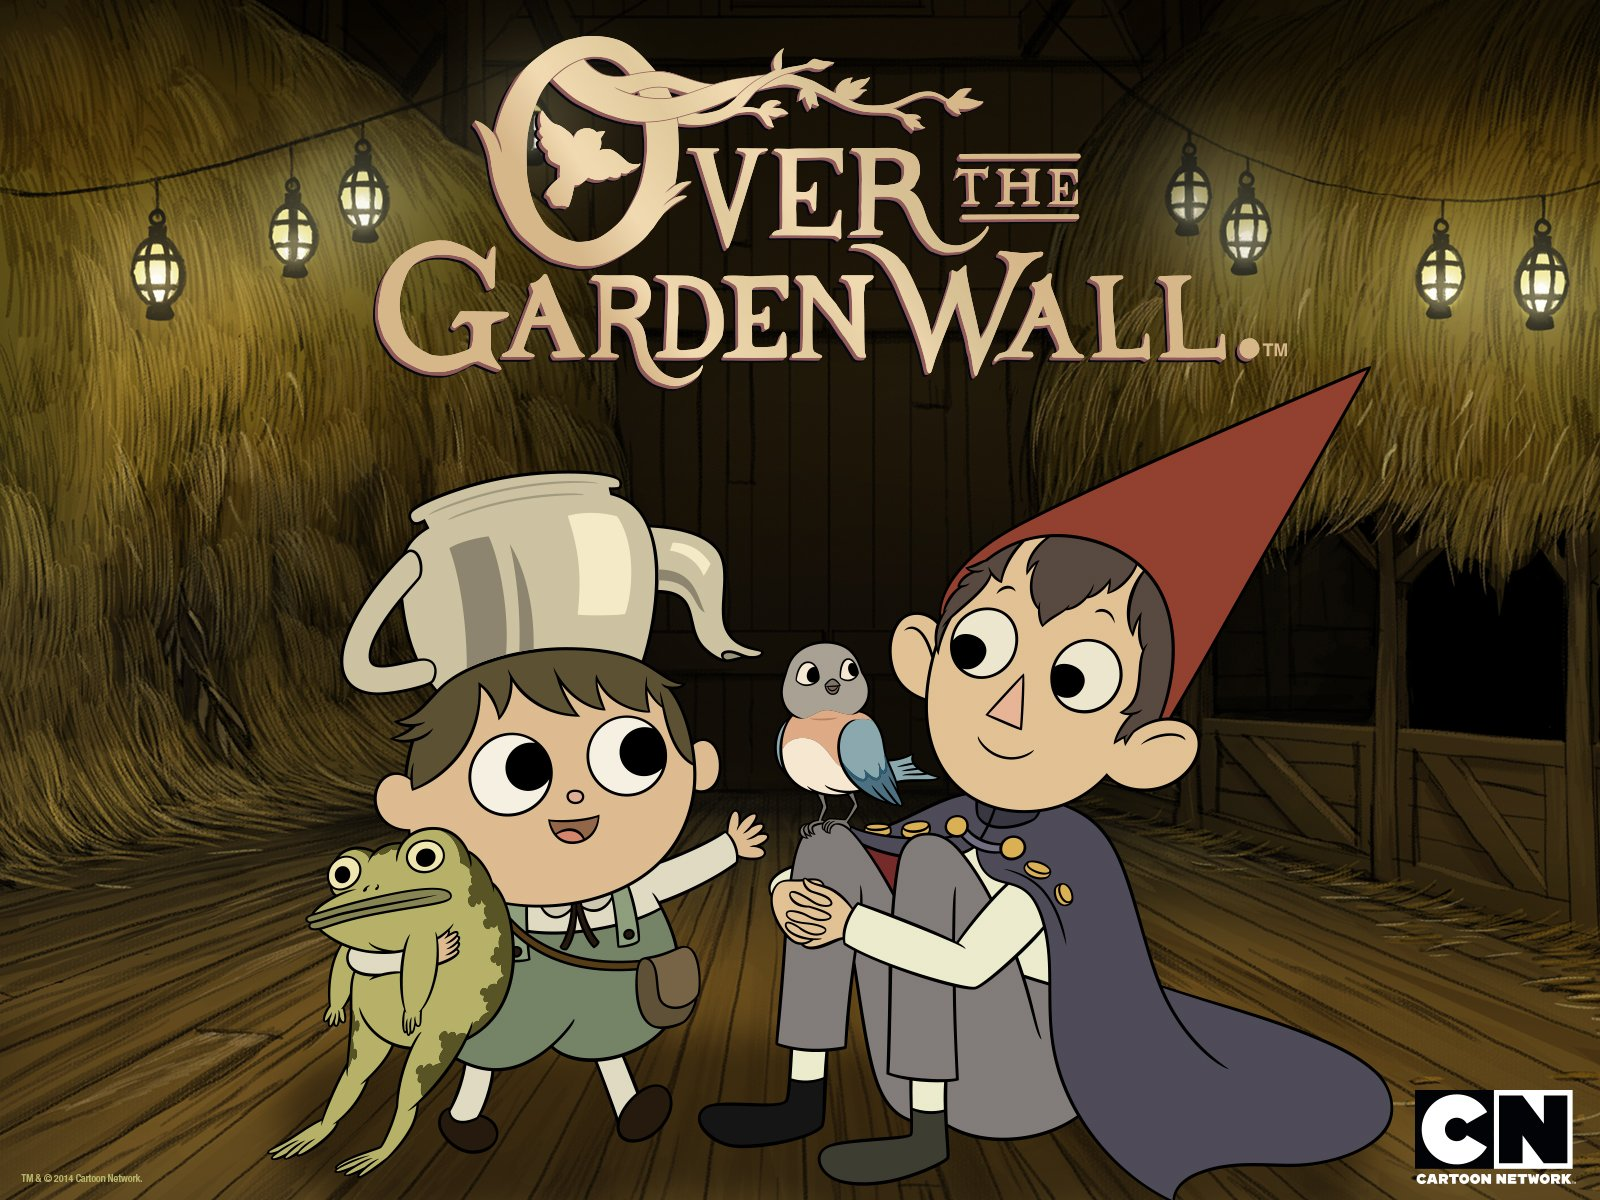 children's TV shows over the garden wall